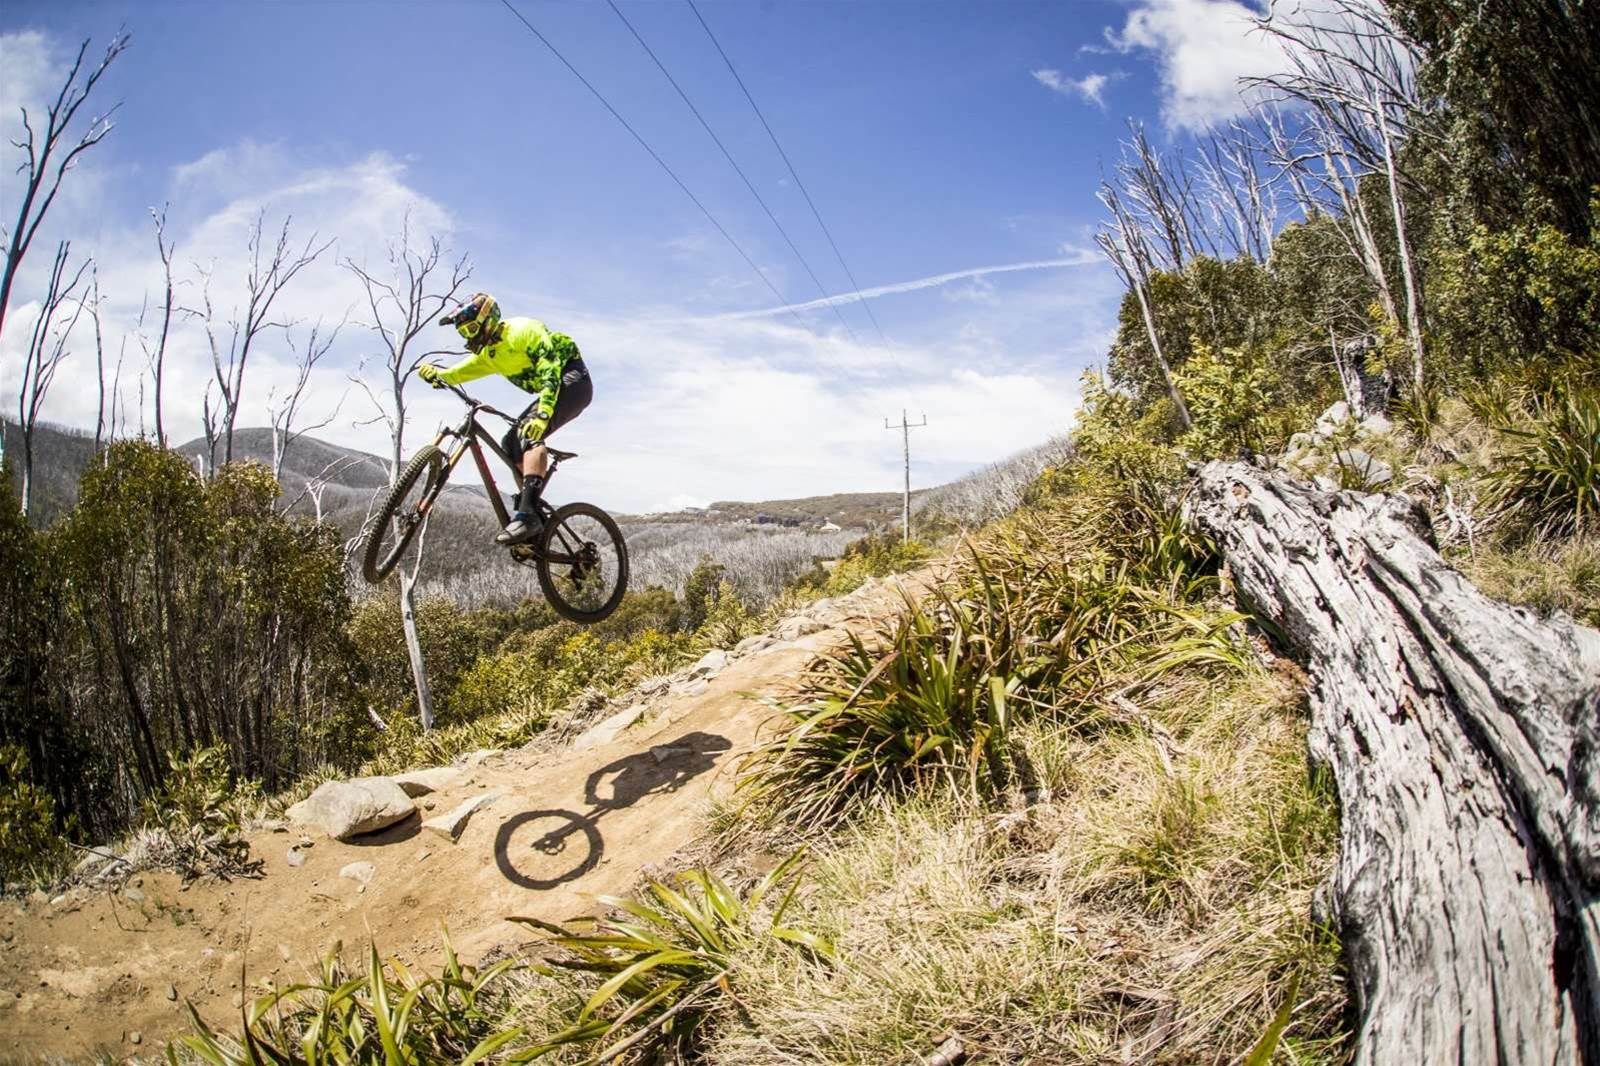 Falls Creek's Flowtown trail